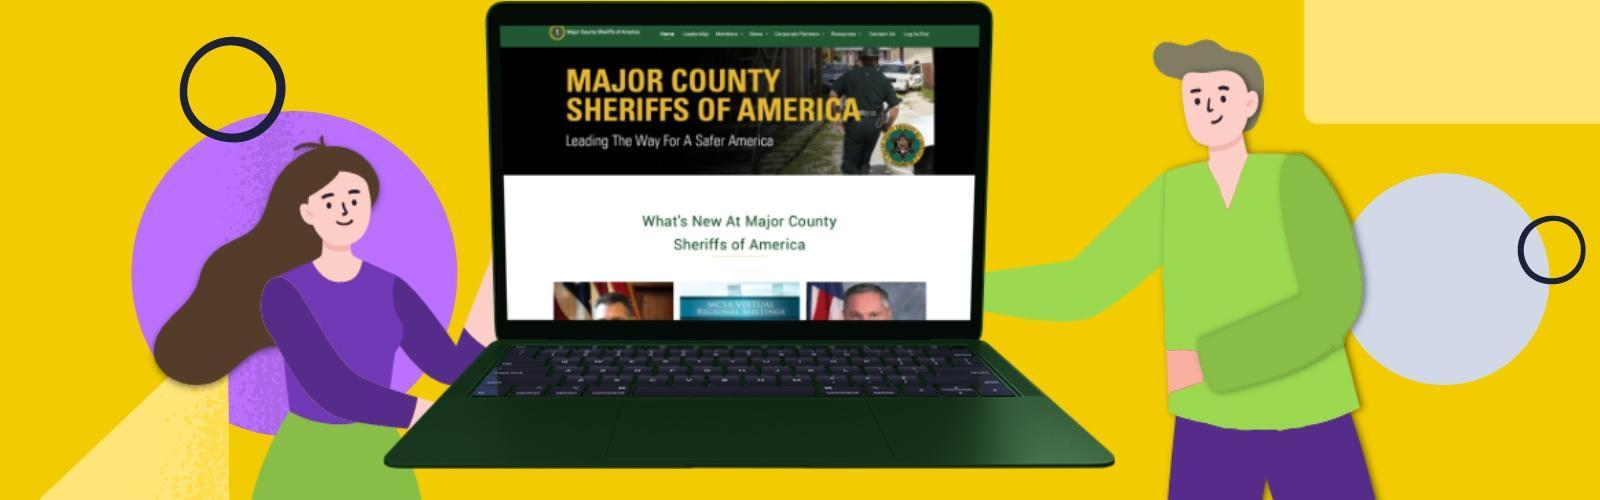 Major County Sheriffs Of America Website Showcase